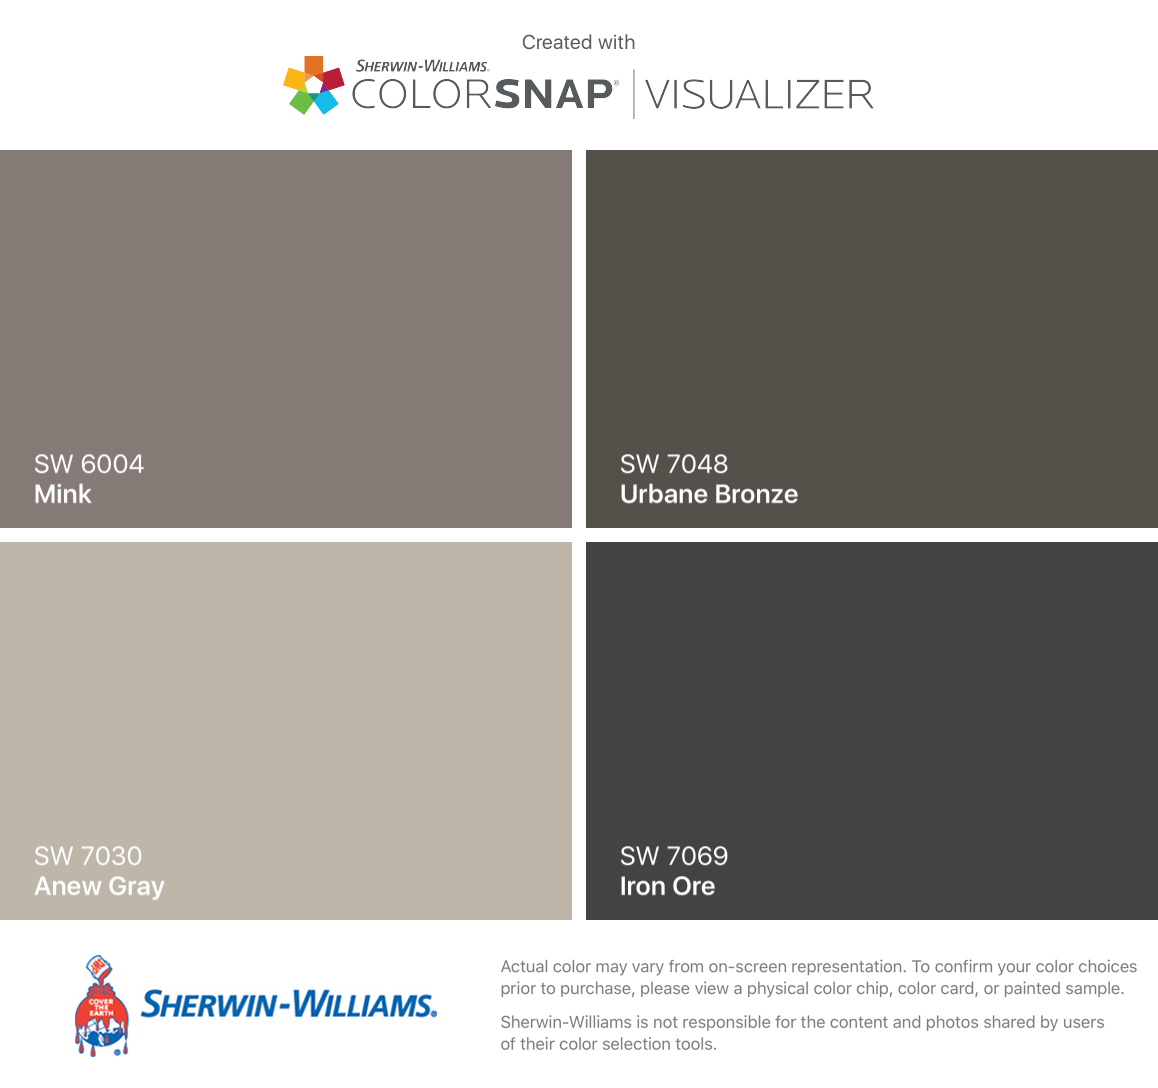 Gauntlet Gray Sherwin Williams I Found These Colors With Colorsnap 174 Visualizer For Iphone